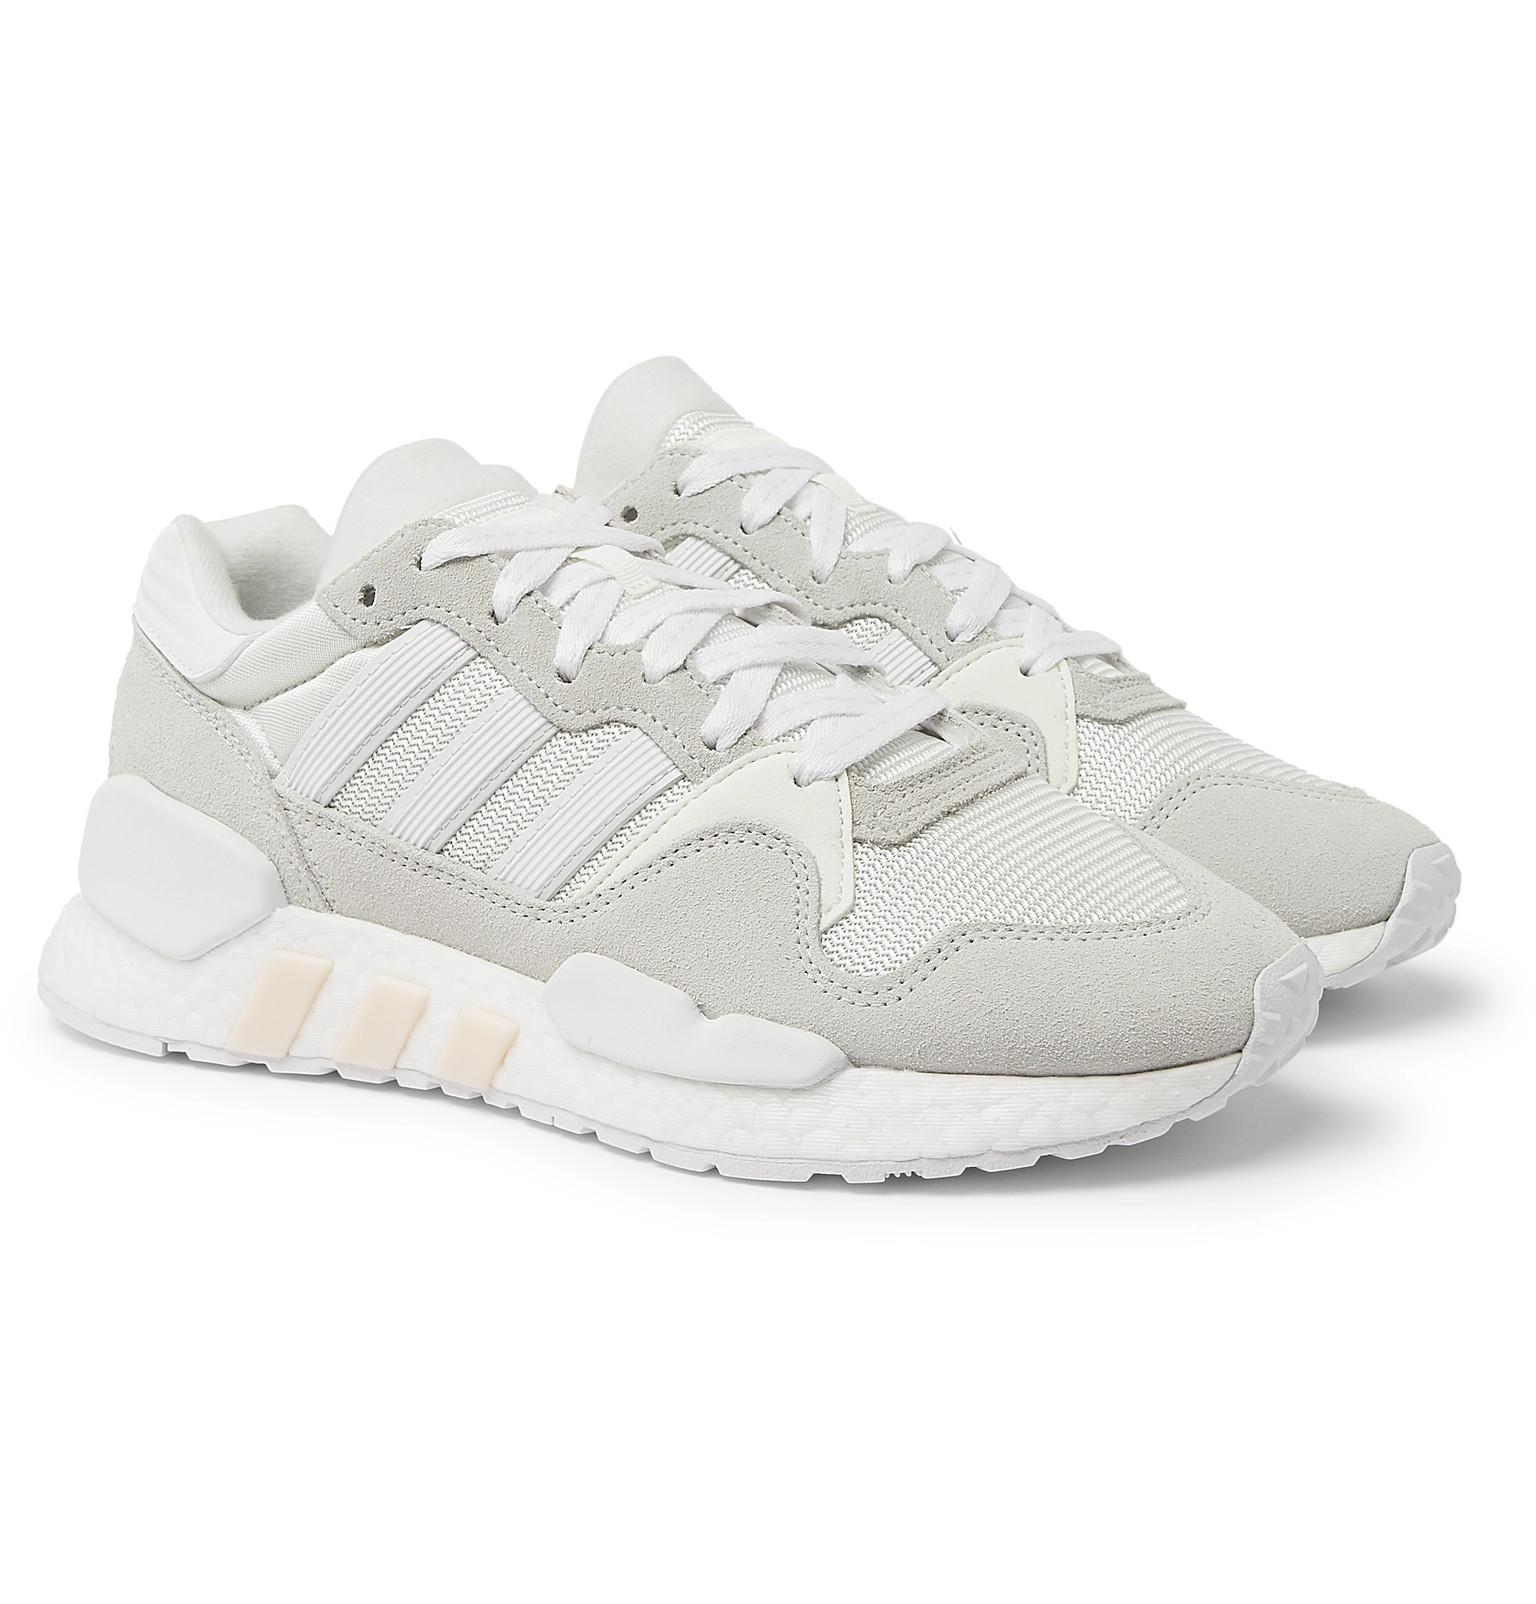 1aac4d5a468d adidas Originals Zx 930 X Eqt Mesh And Suede Sneakers in White for ...